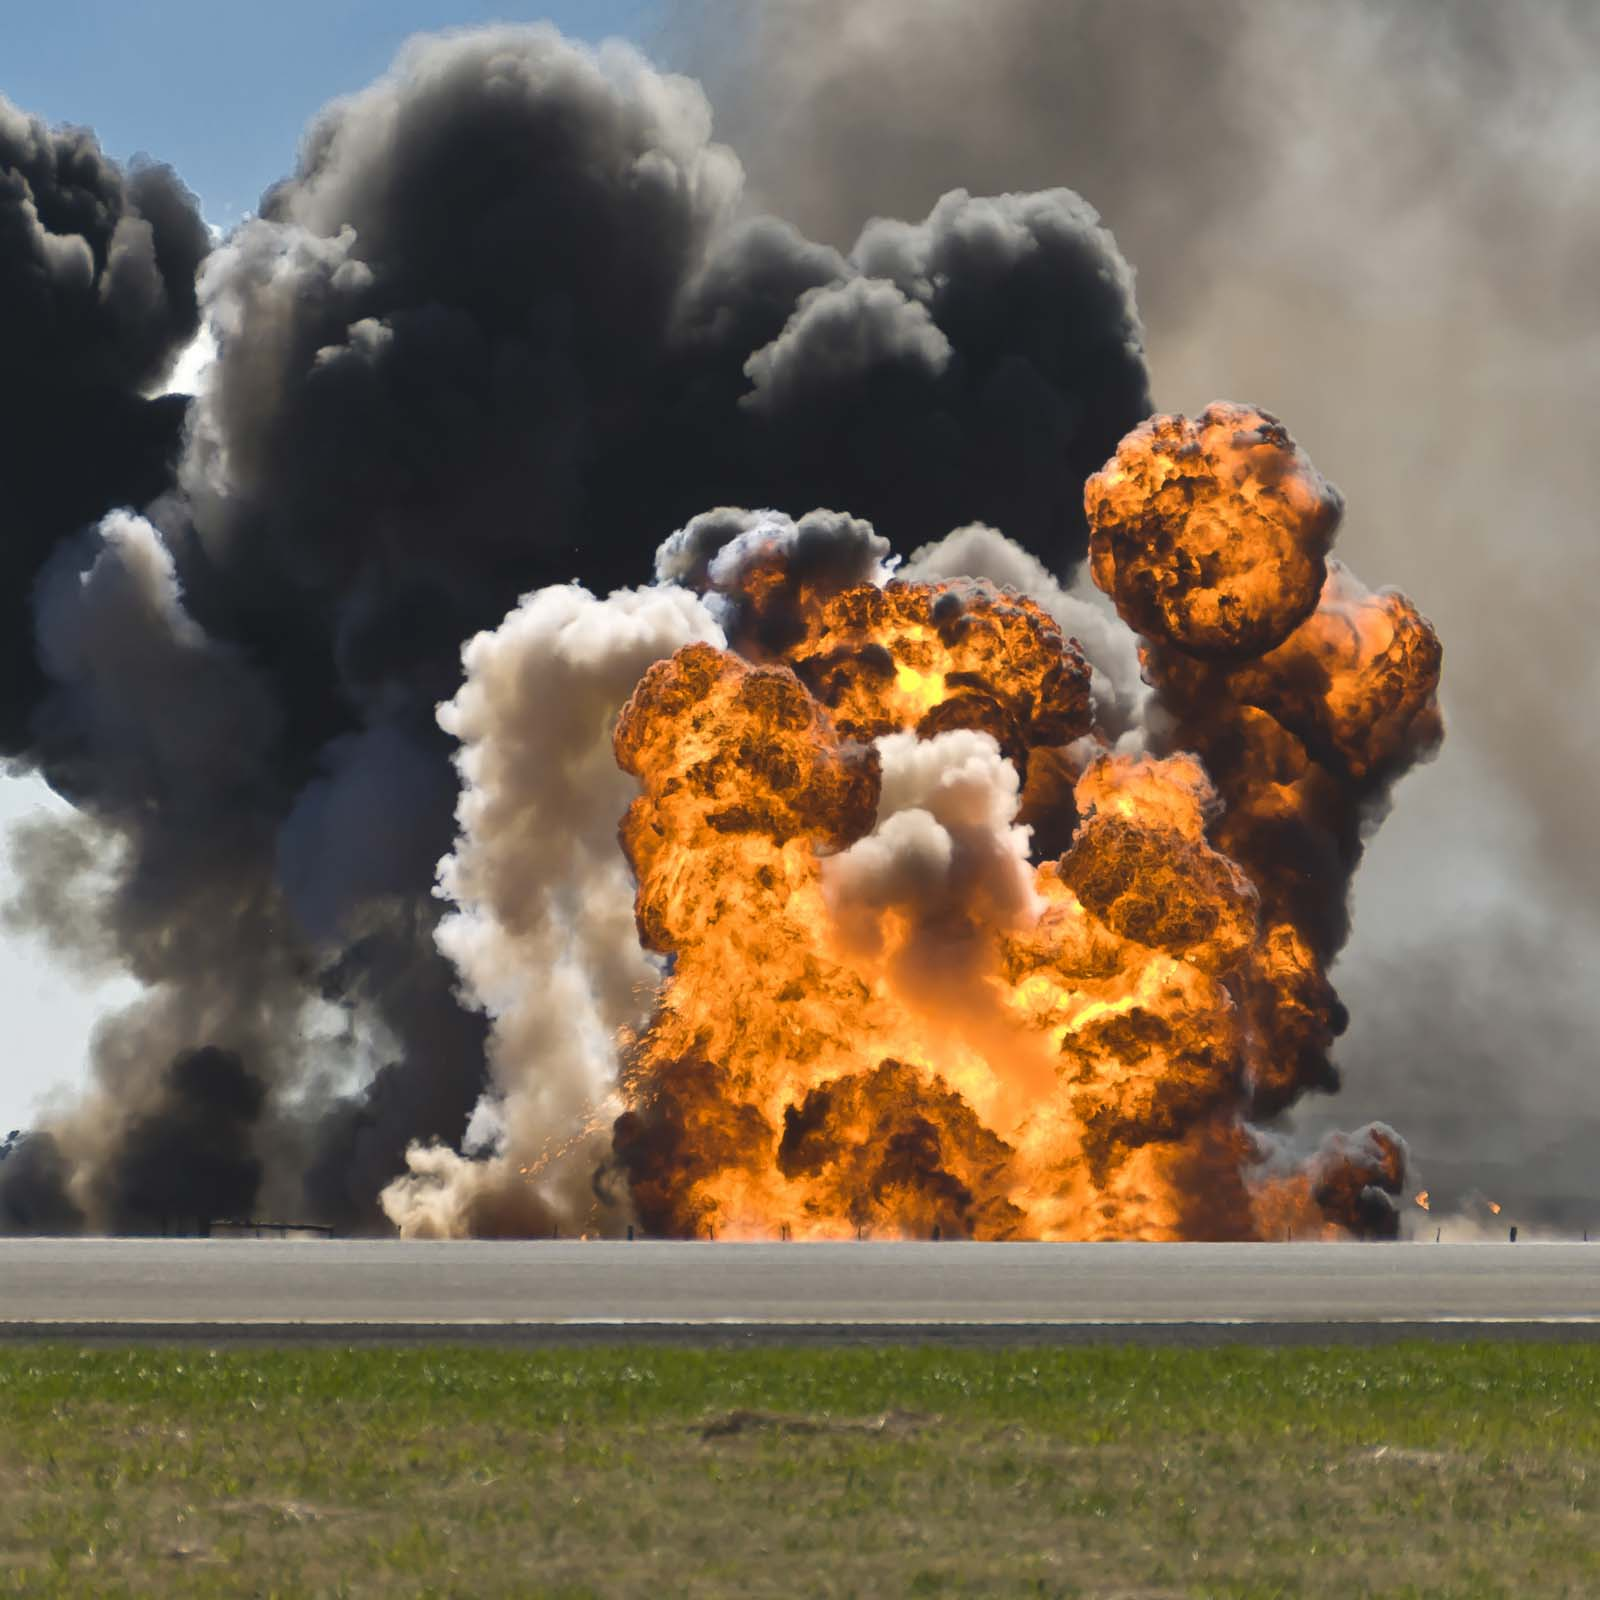 explosion-site-side-of-road